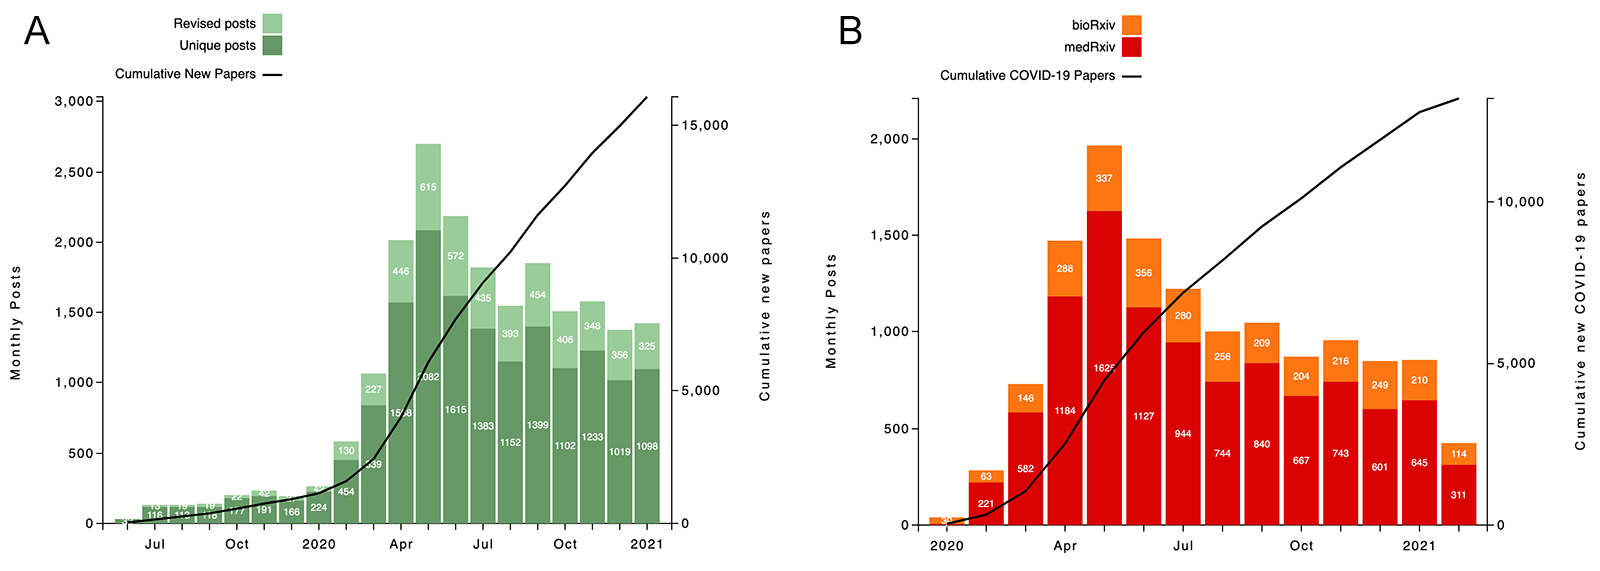 bar charts showing the number of preprint papers published